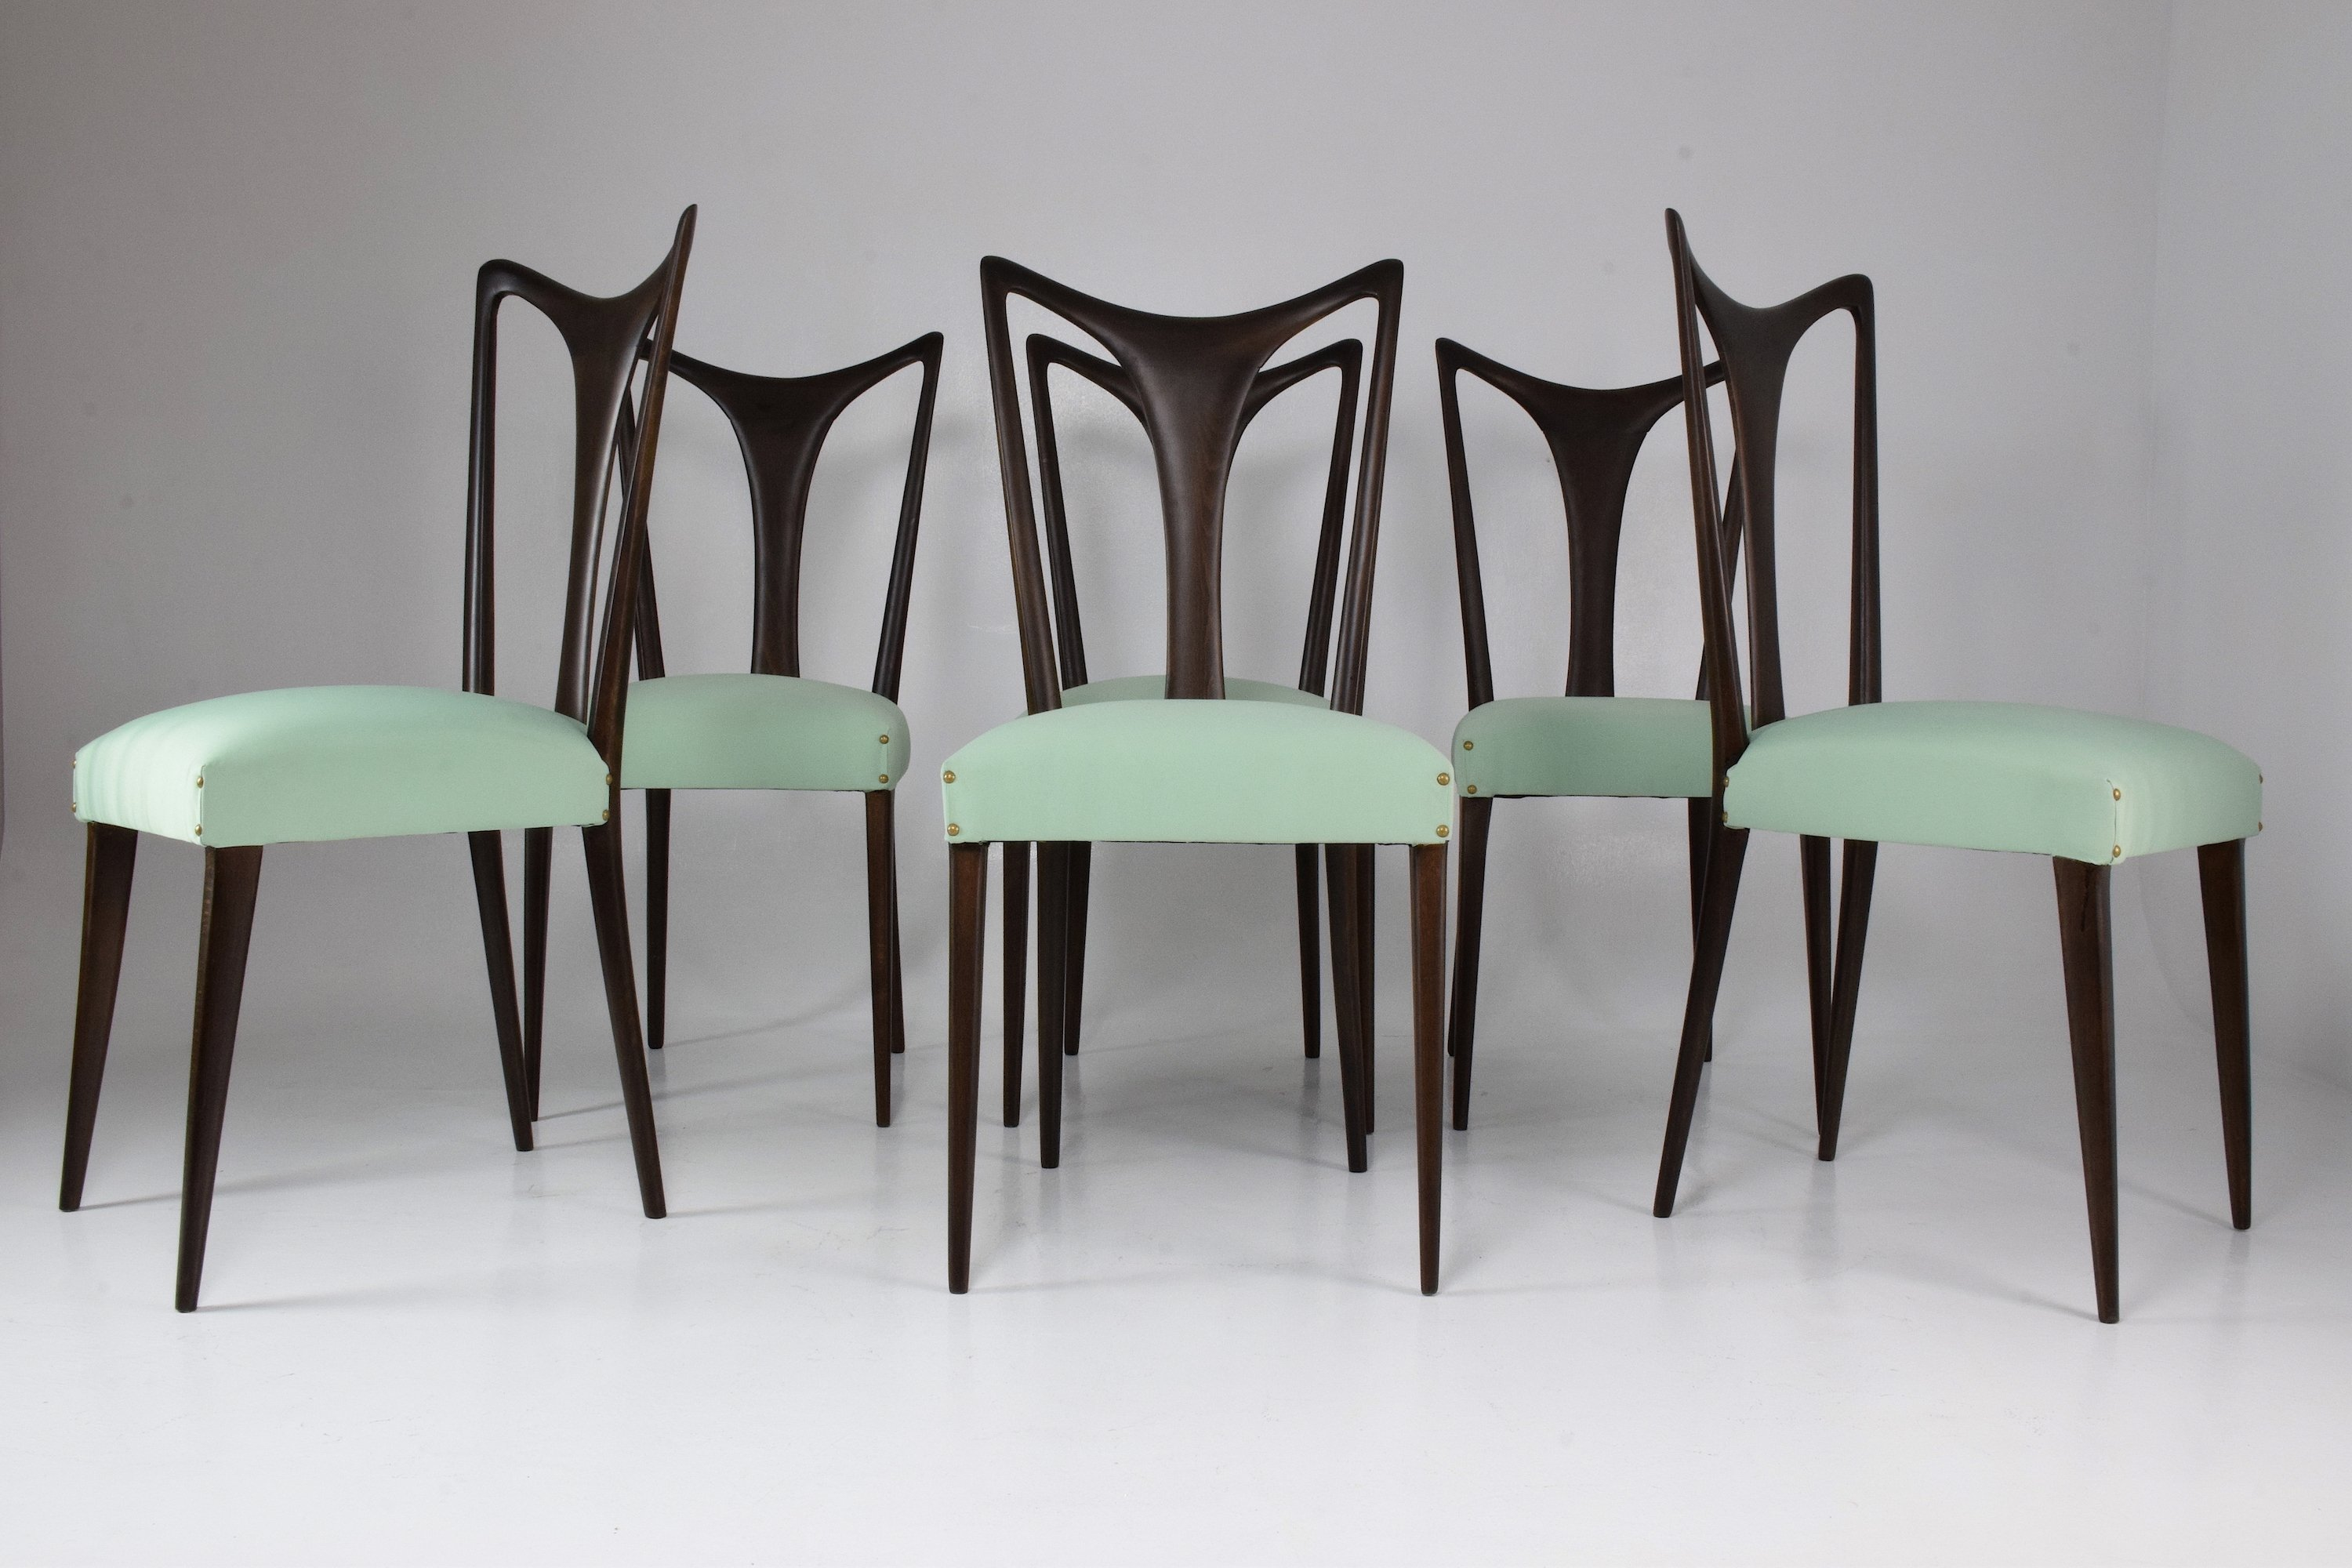 Set of 6 italian vintage dining chairs by guglielmo ulrich 1940s